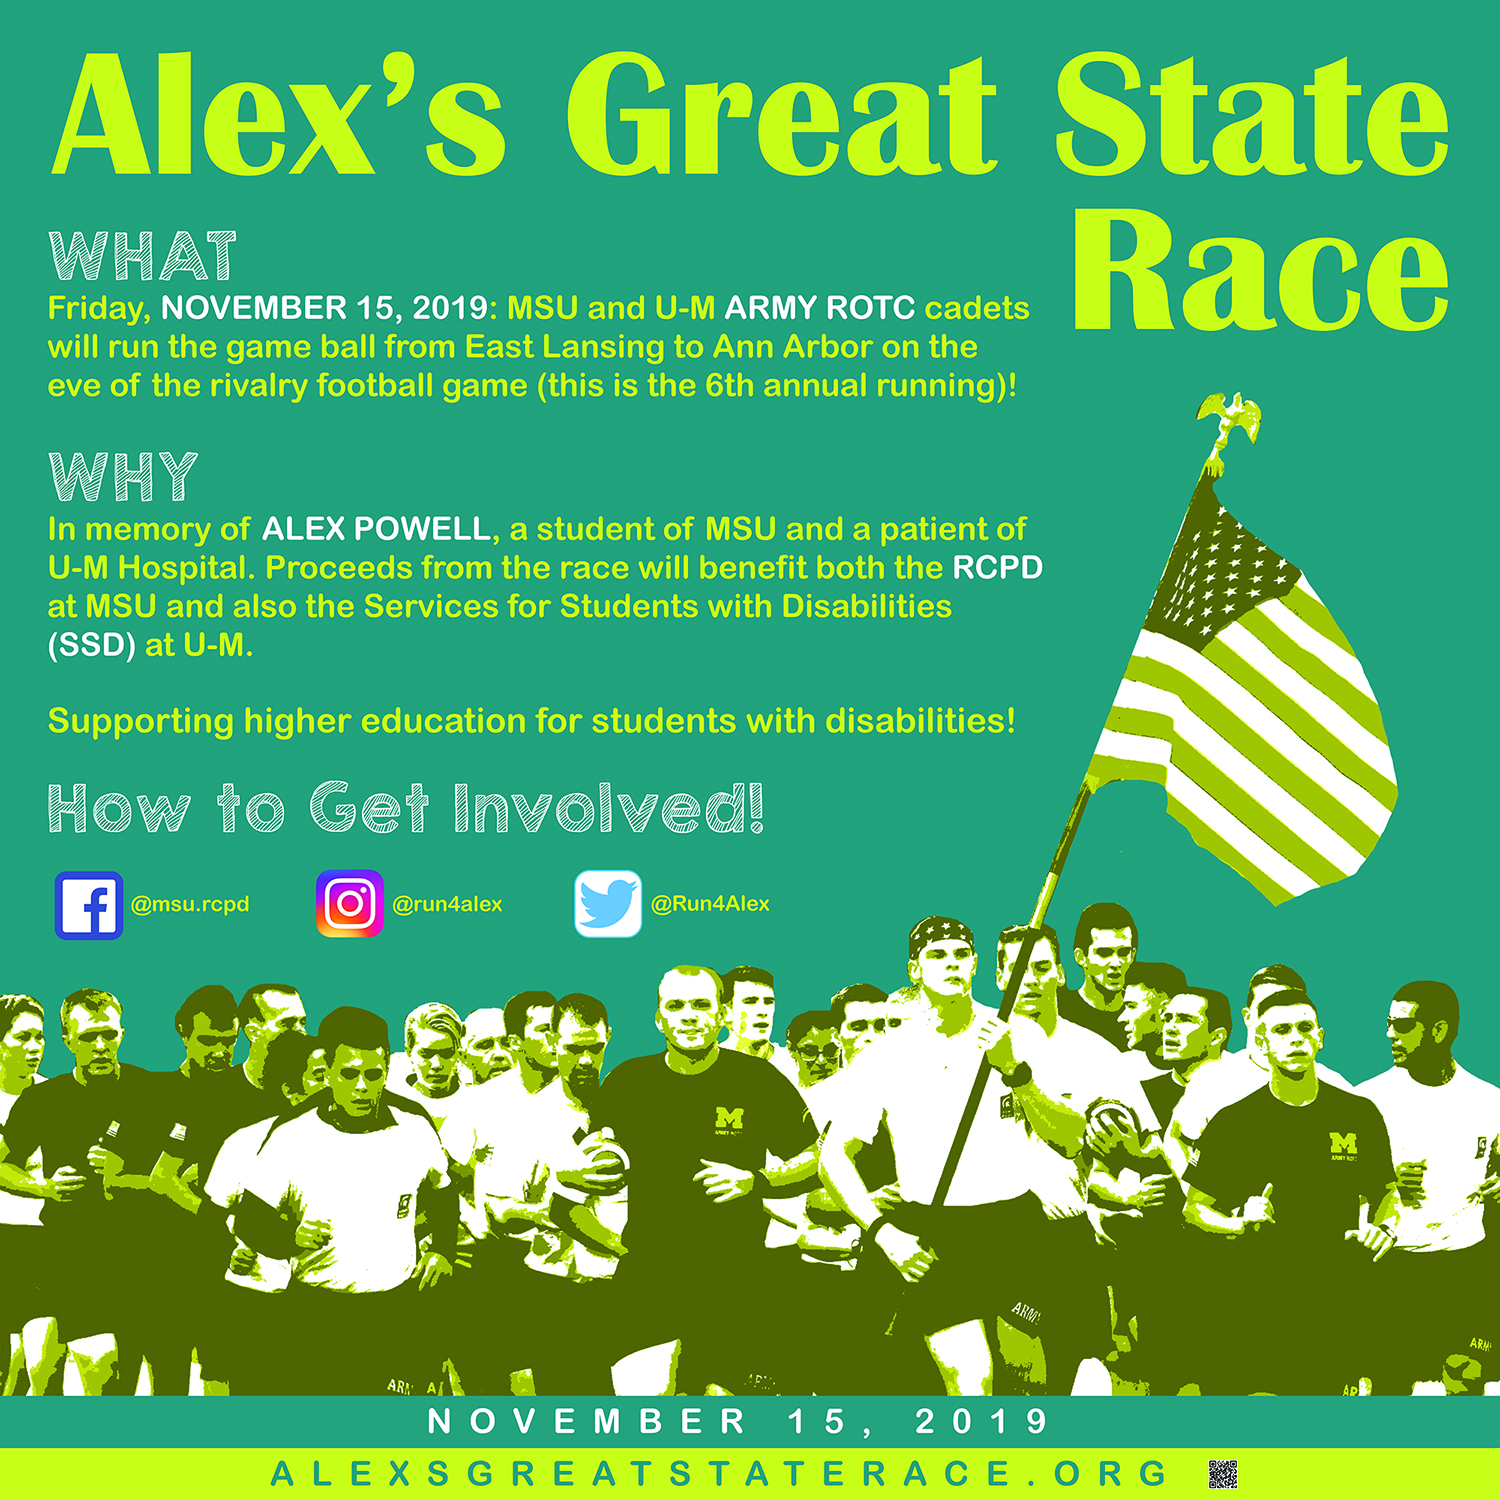 Promotional image for Alex's Great State Race featuring some event info which is also in the blog post